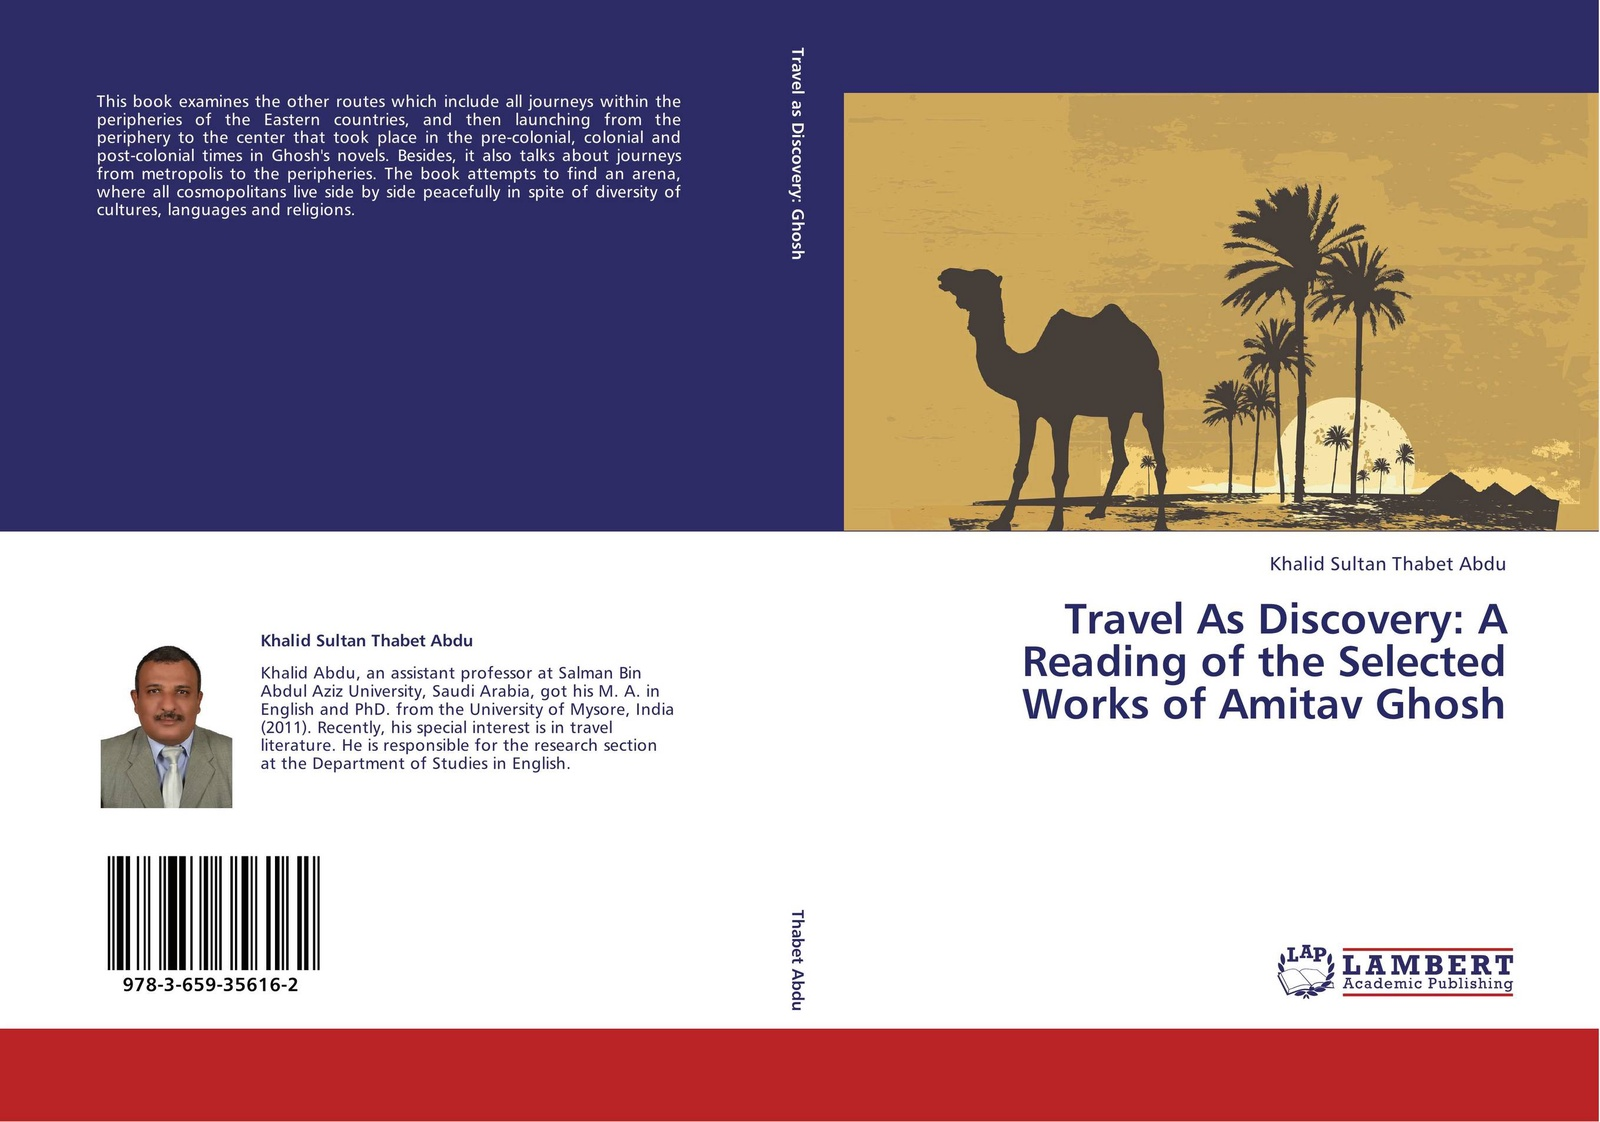 Khalid Sultan Thabet Abdu Travel As Discovery: A Reading of the Selected Works Amitav Ghosh